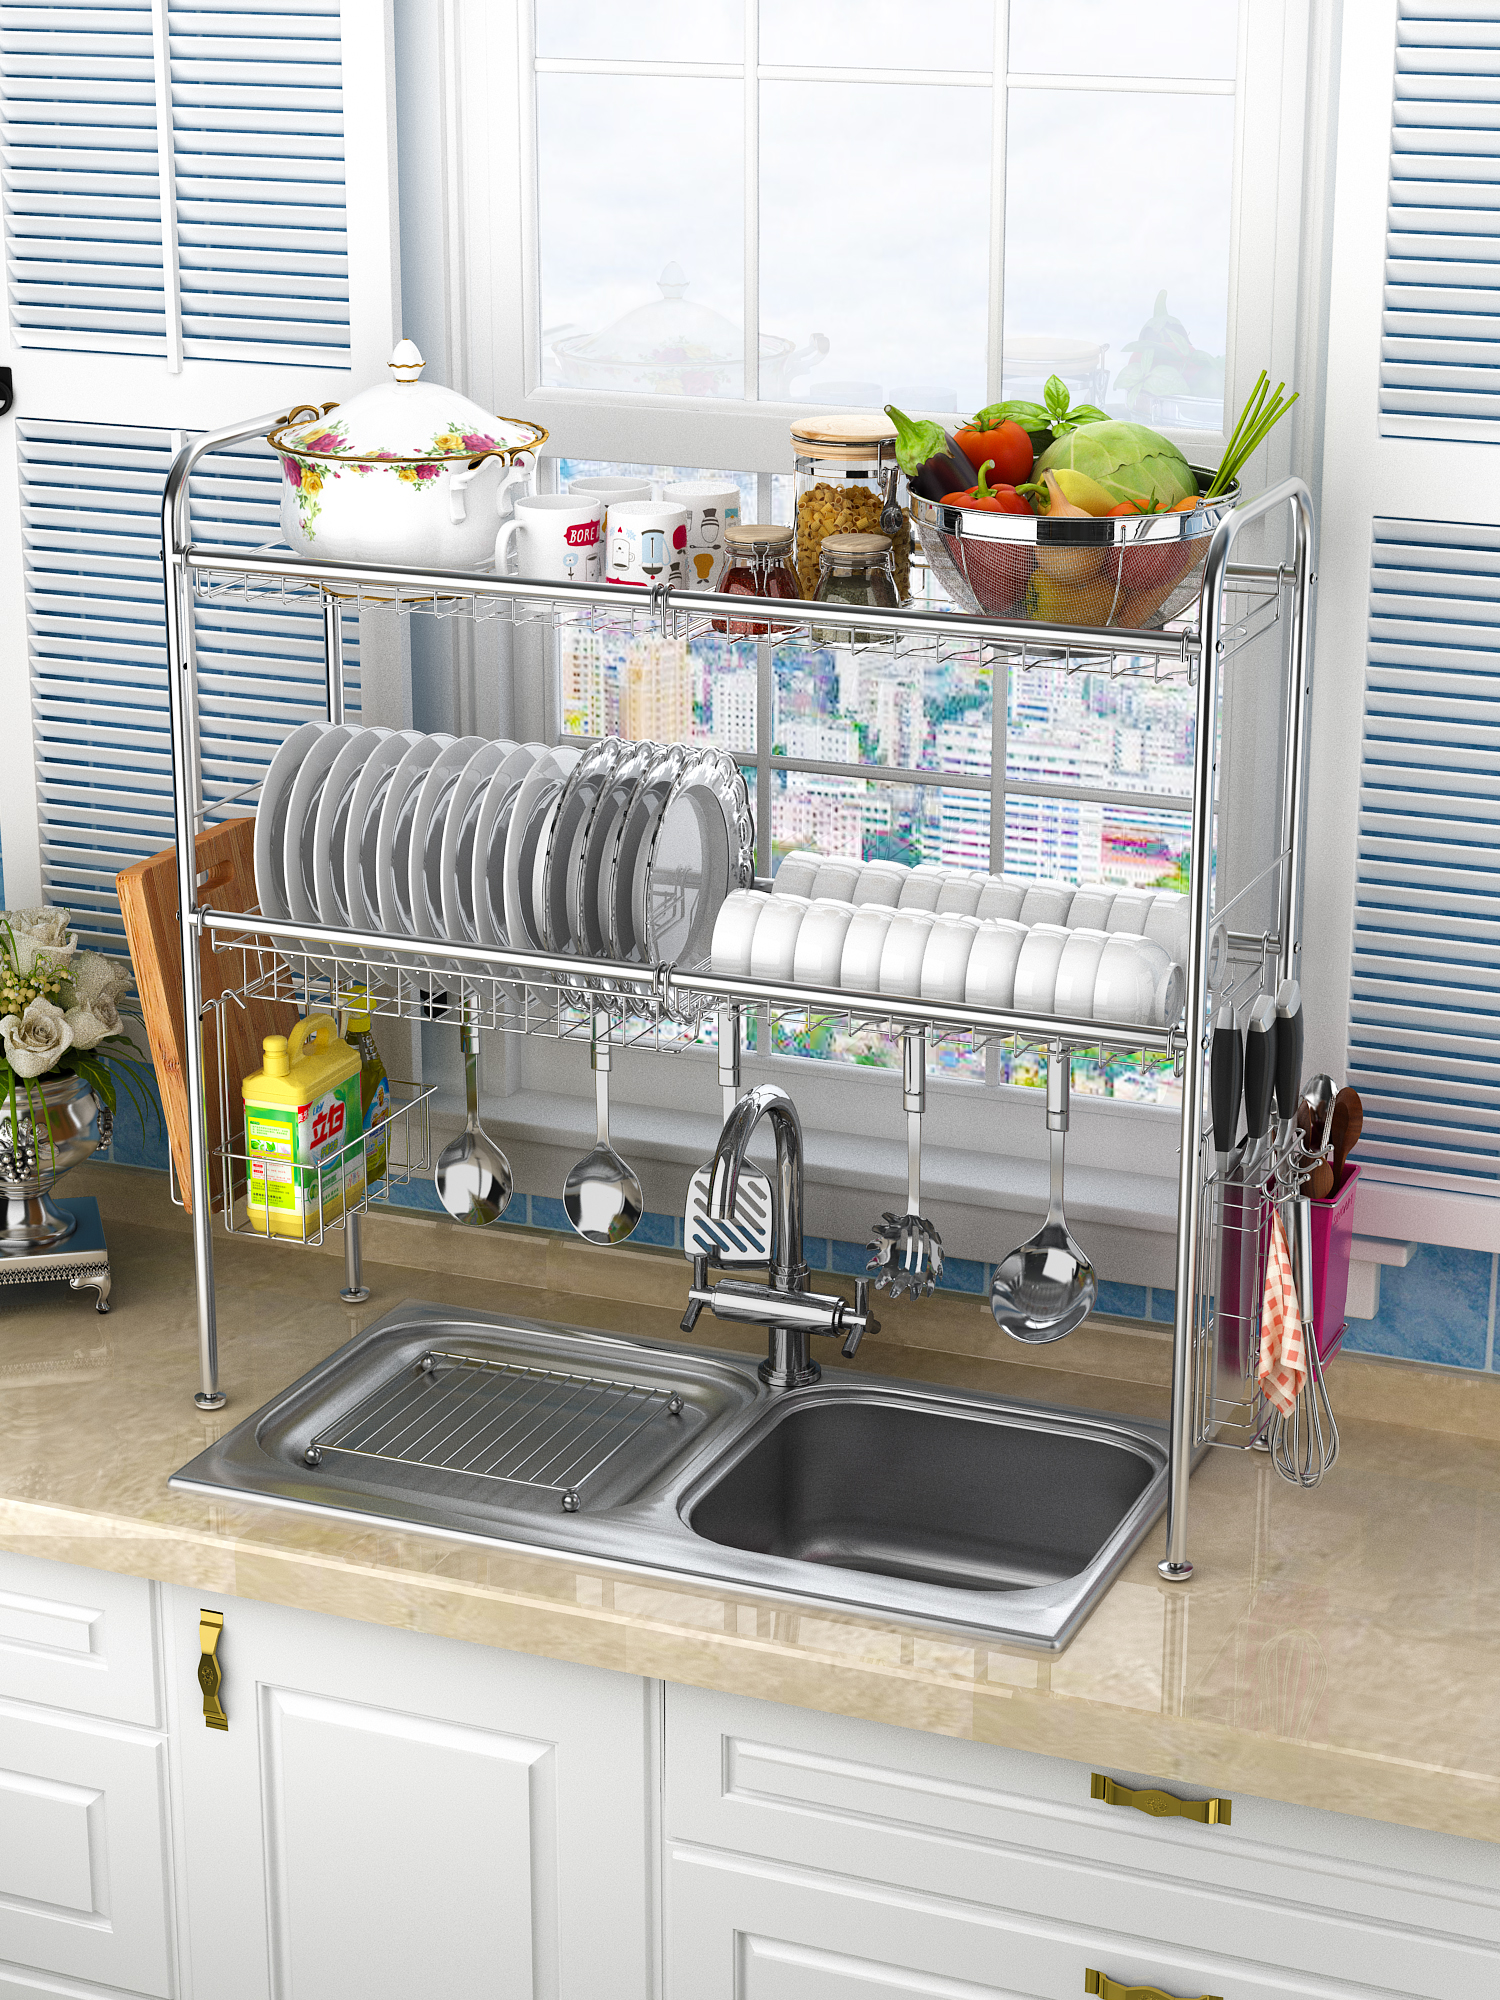 304 Stainless Steel Bowl Rack Sink Drainage Rack Kitchen